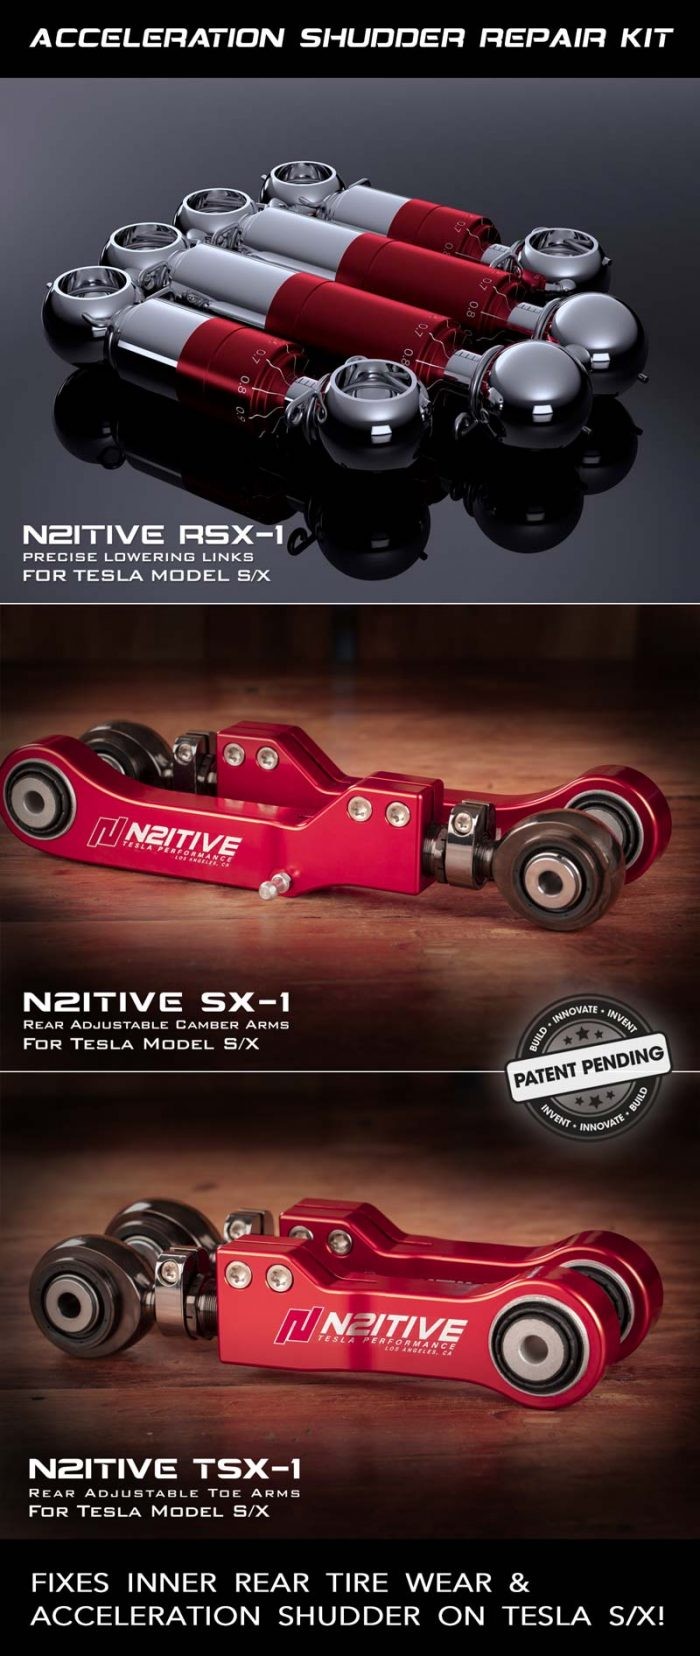 N2itive's Acceleration Shudder Repair Kit For Tesla S and X. Also Eliminates The All Too Common Inner Rear Tire Wear.